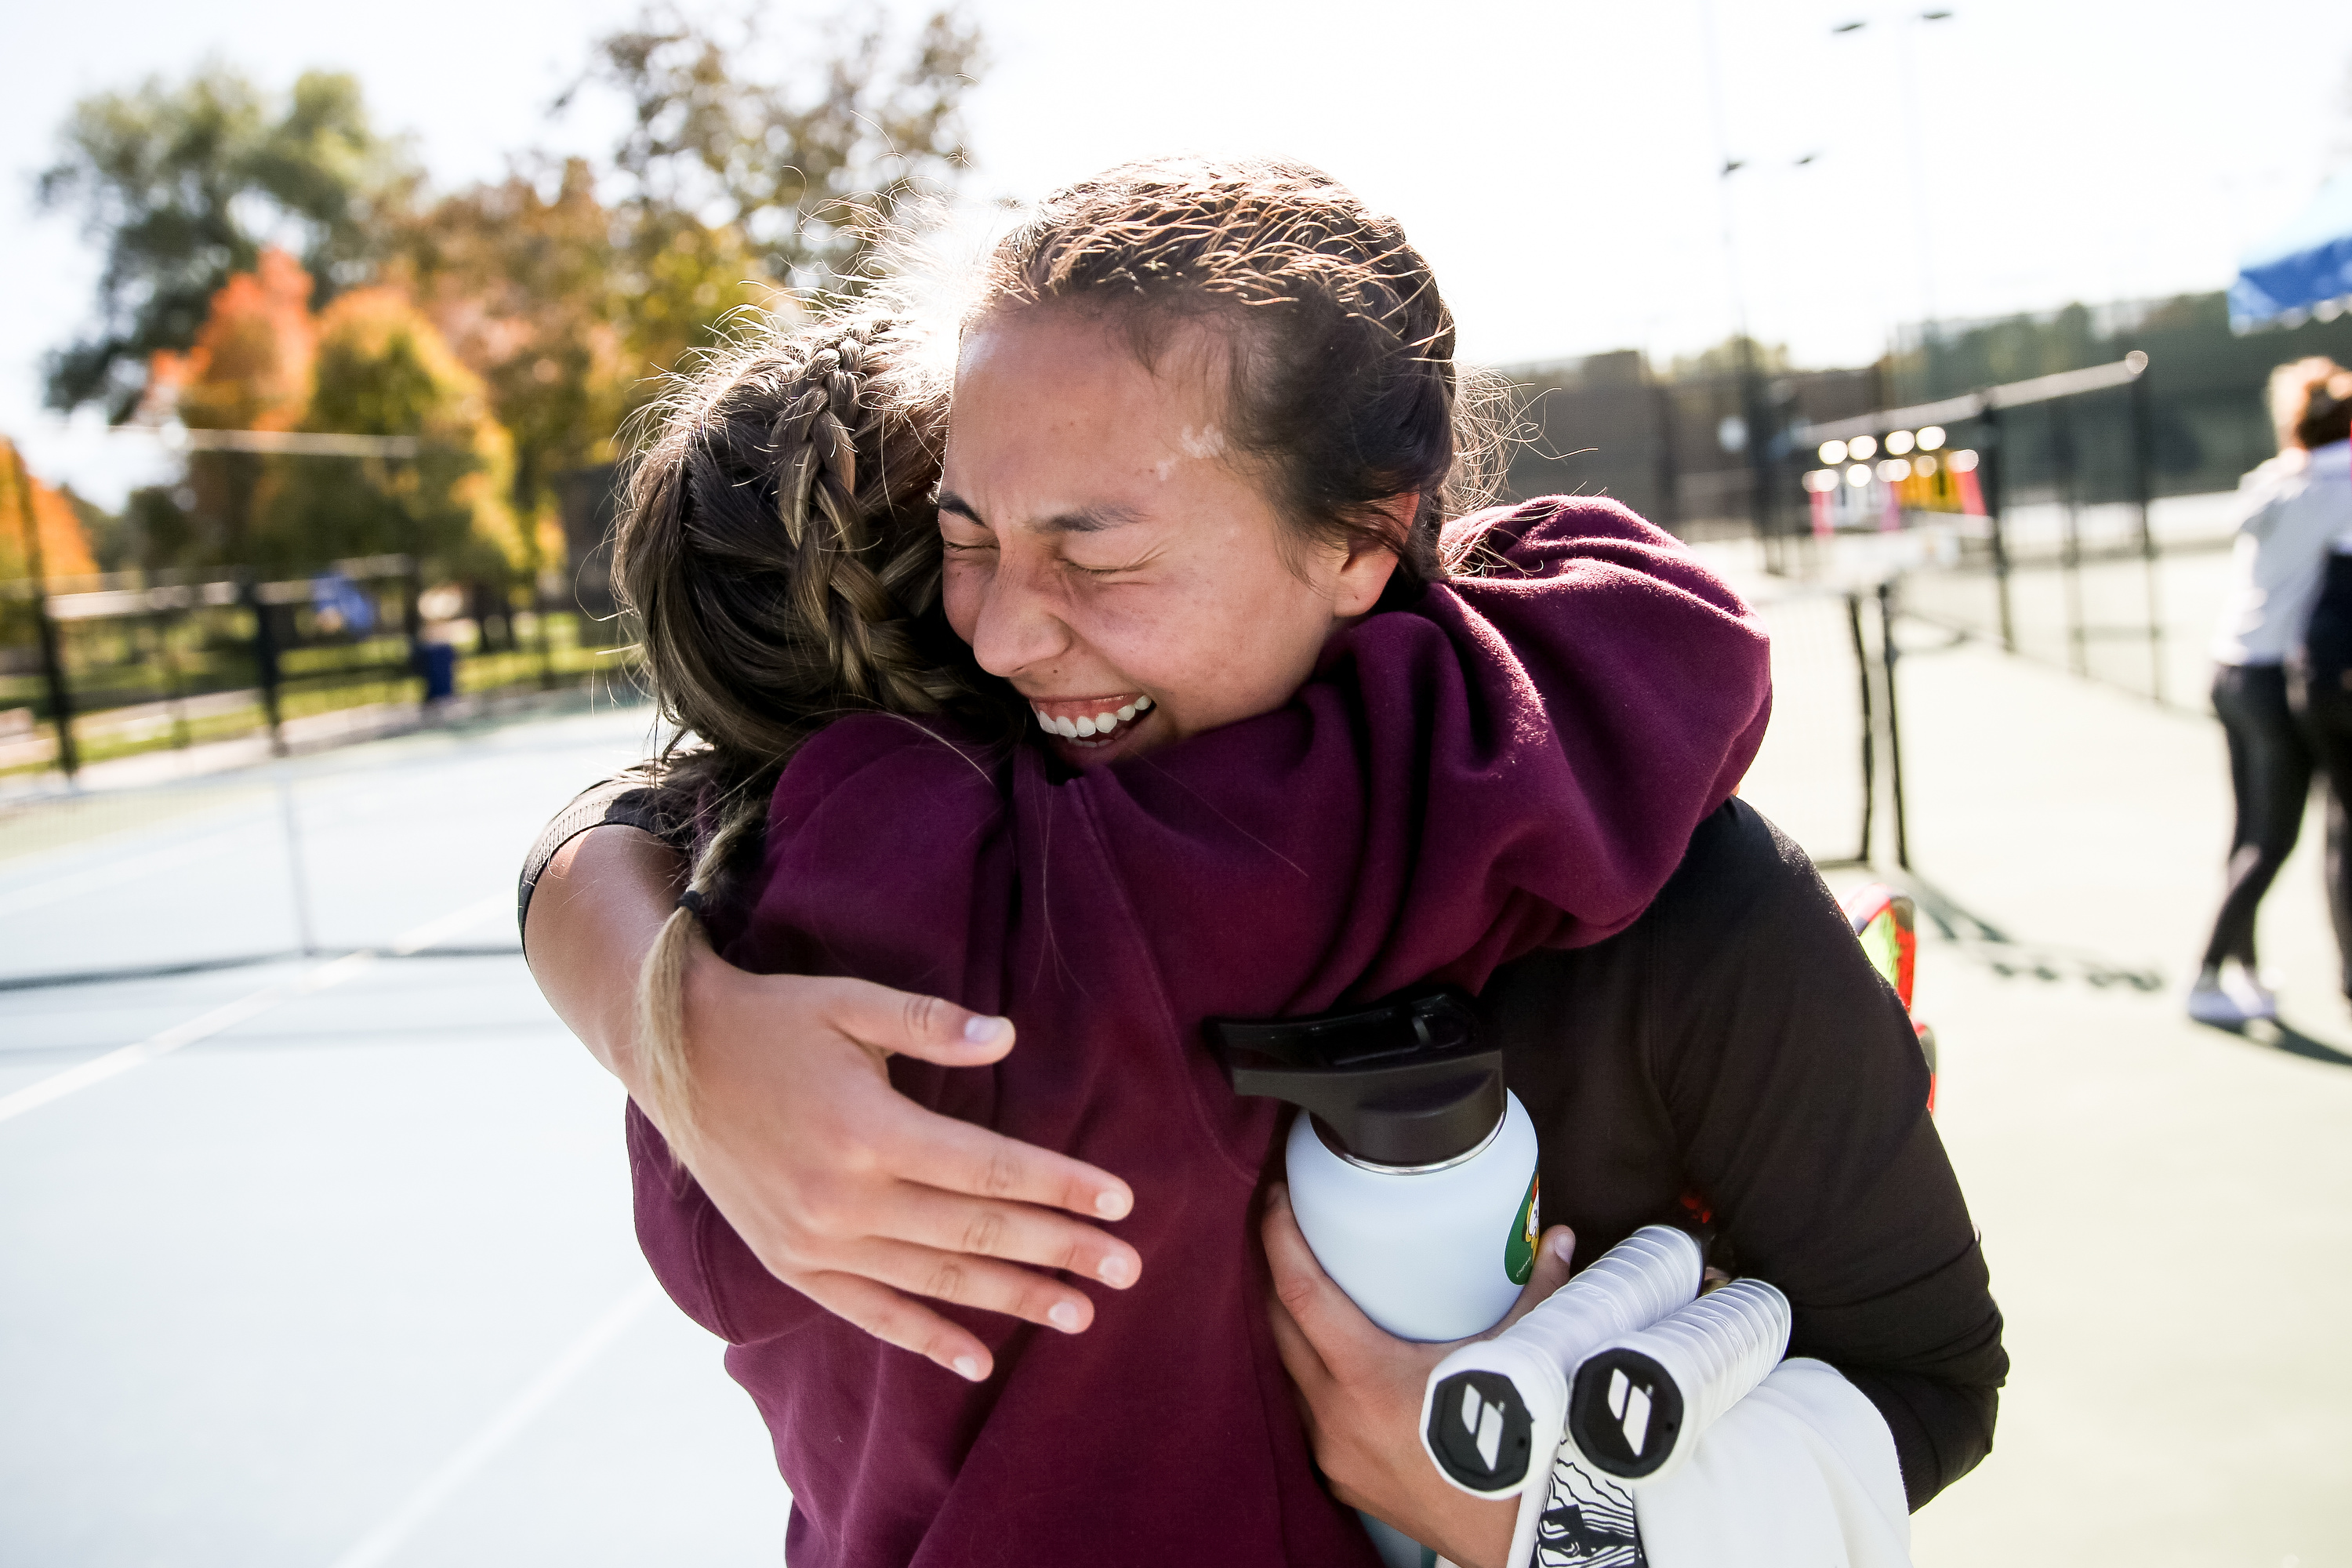 Naomi Noot, of American Heritage Academy, hugs friend Gentry McClain after beating Manti's Sadie Cox in the 3A first singles match of the girls tennis state championship at Liberty Park in Salt Lake City on Saturday, Oct. 12, 2019.